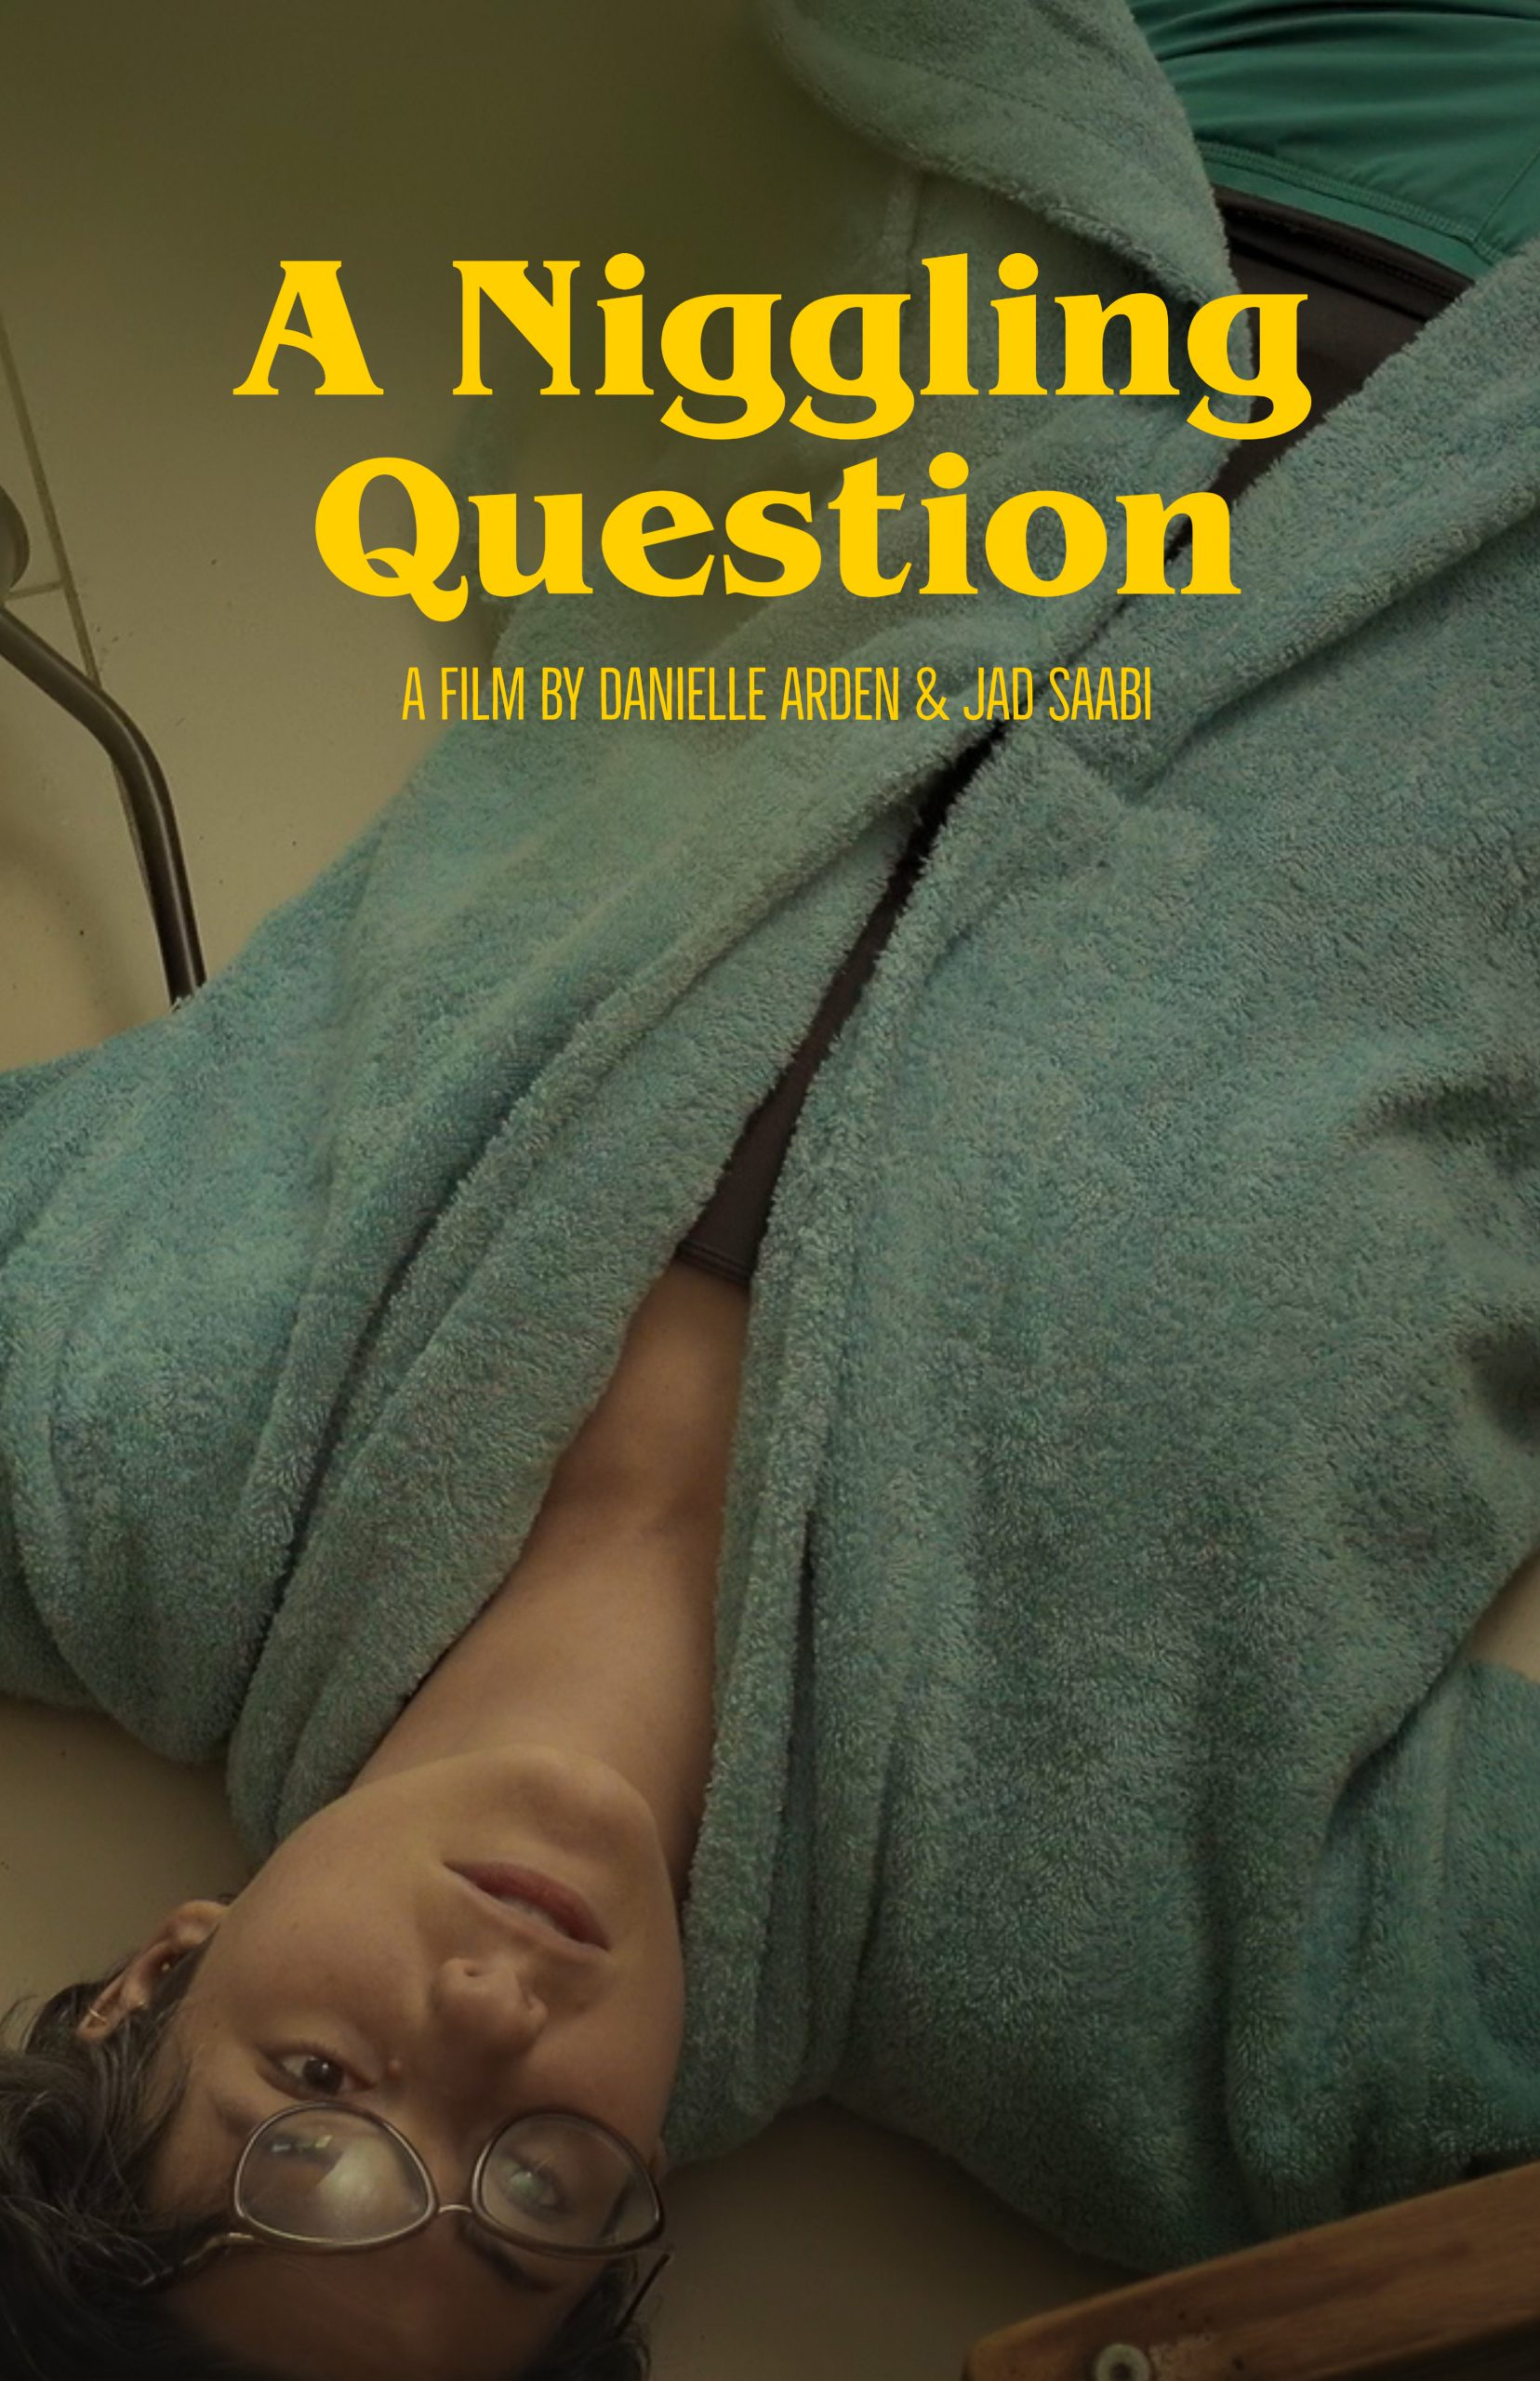 ANigglingQuestion_Poster